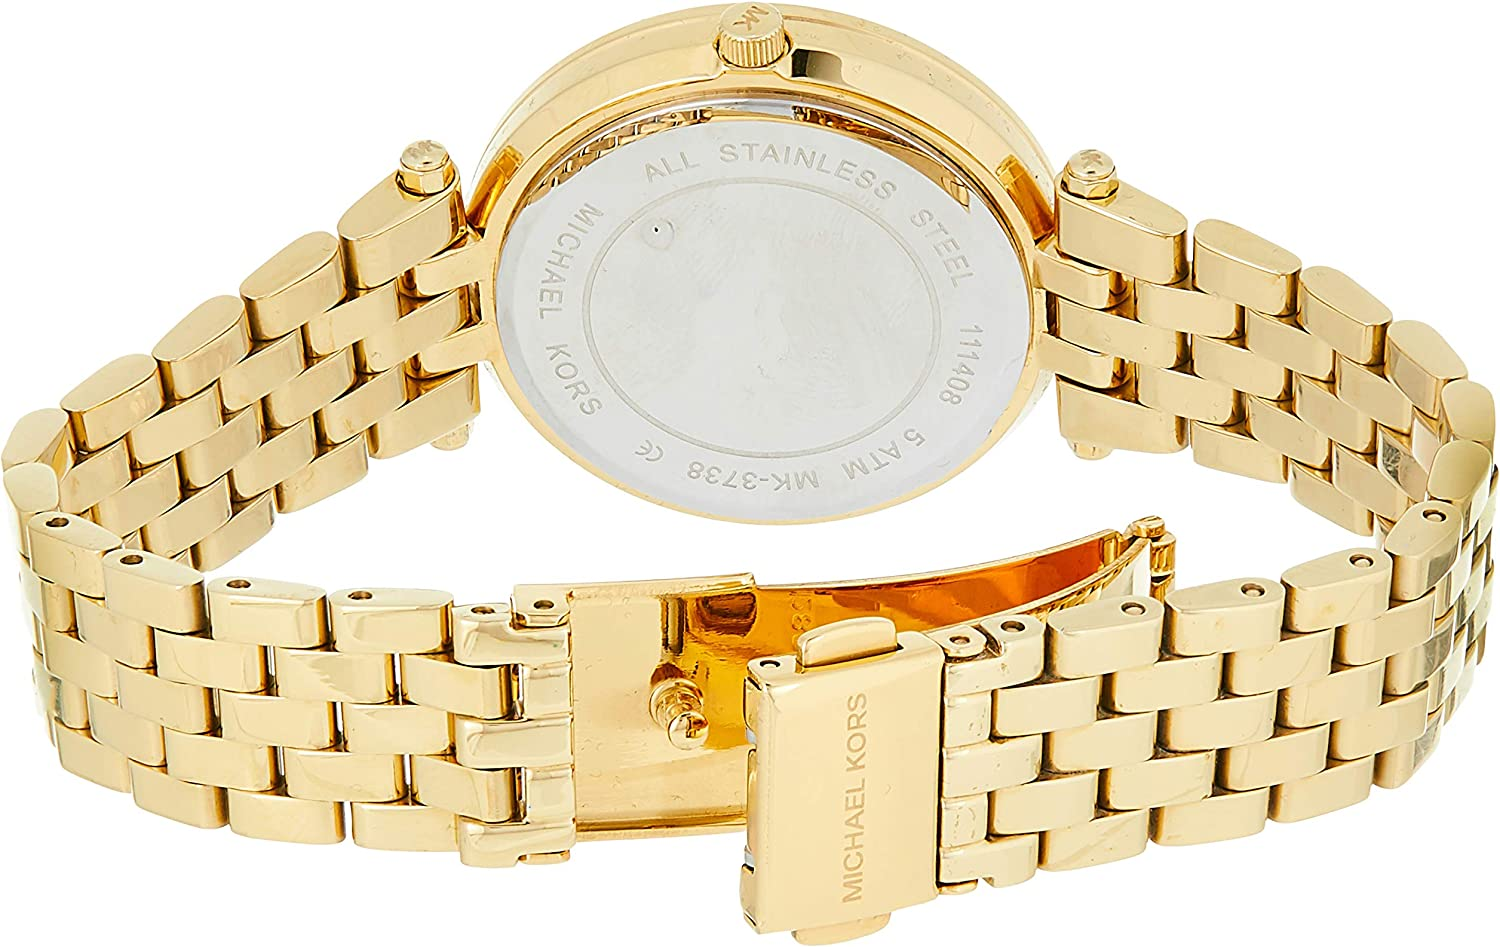 Michael Kors Women's Mini Darci Quartz Watch with Stainless-Steel Strap, Gold, 8 (Model: MK3738)